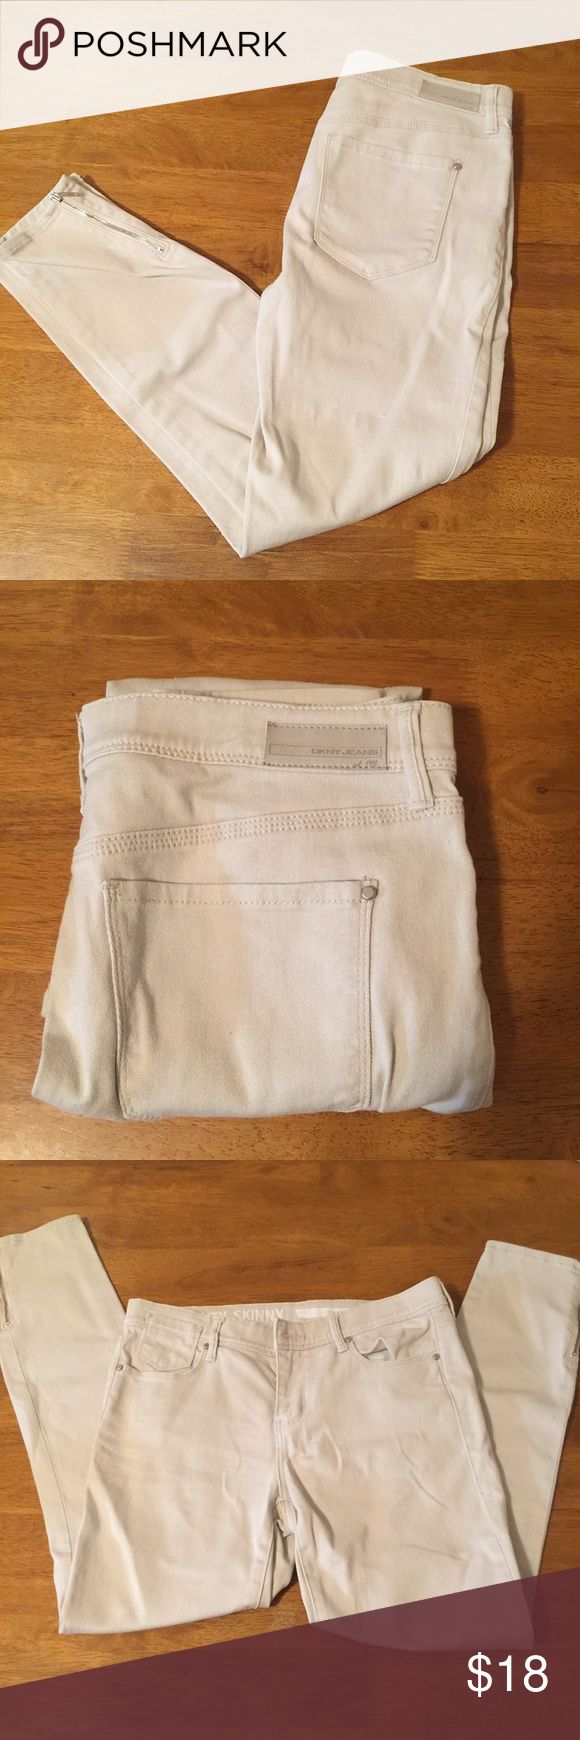 """DKNY Jeans City Skinny Zipped Ankle Off White This adaptable pair of DKNY skinny jeans is in like new condition, and looks fantastic with various outfits. It's suggested for either semi formal or casual wear. While maintaining a bit of stretch, these pants are mostly stiff and form fitting.   Material: 98% cotton, 2% spandex  Measurements: Rise: 9"""", Waist: 30"""" circumference, Inseam: 27"""".  Take 50% off these pants and 10% off entire order when bundled with additional items in my closet. Dkny…"""